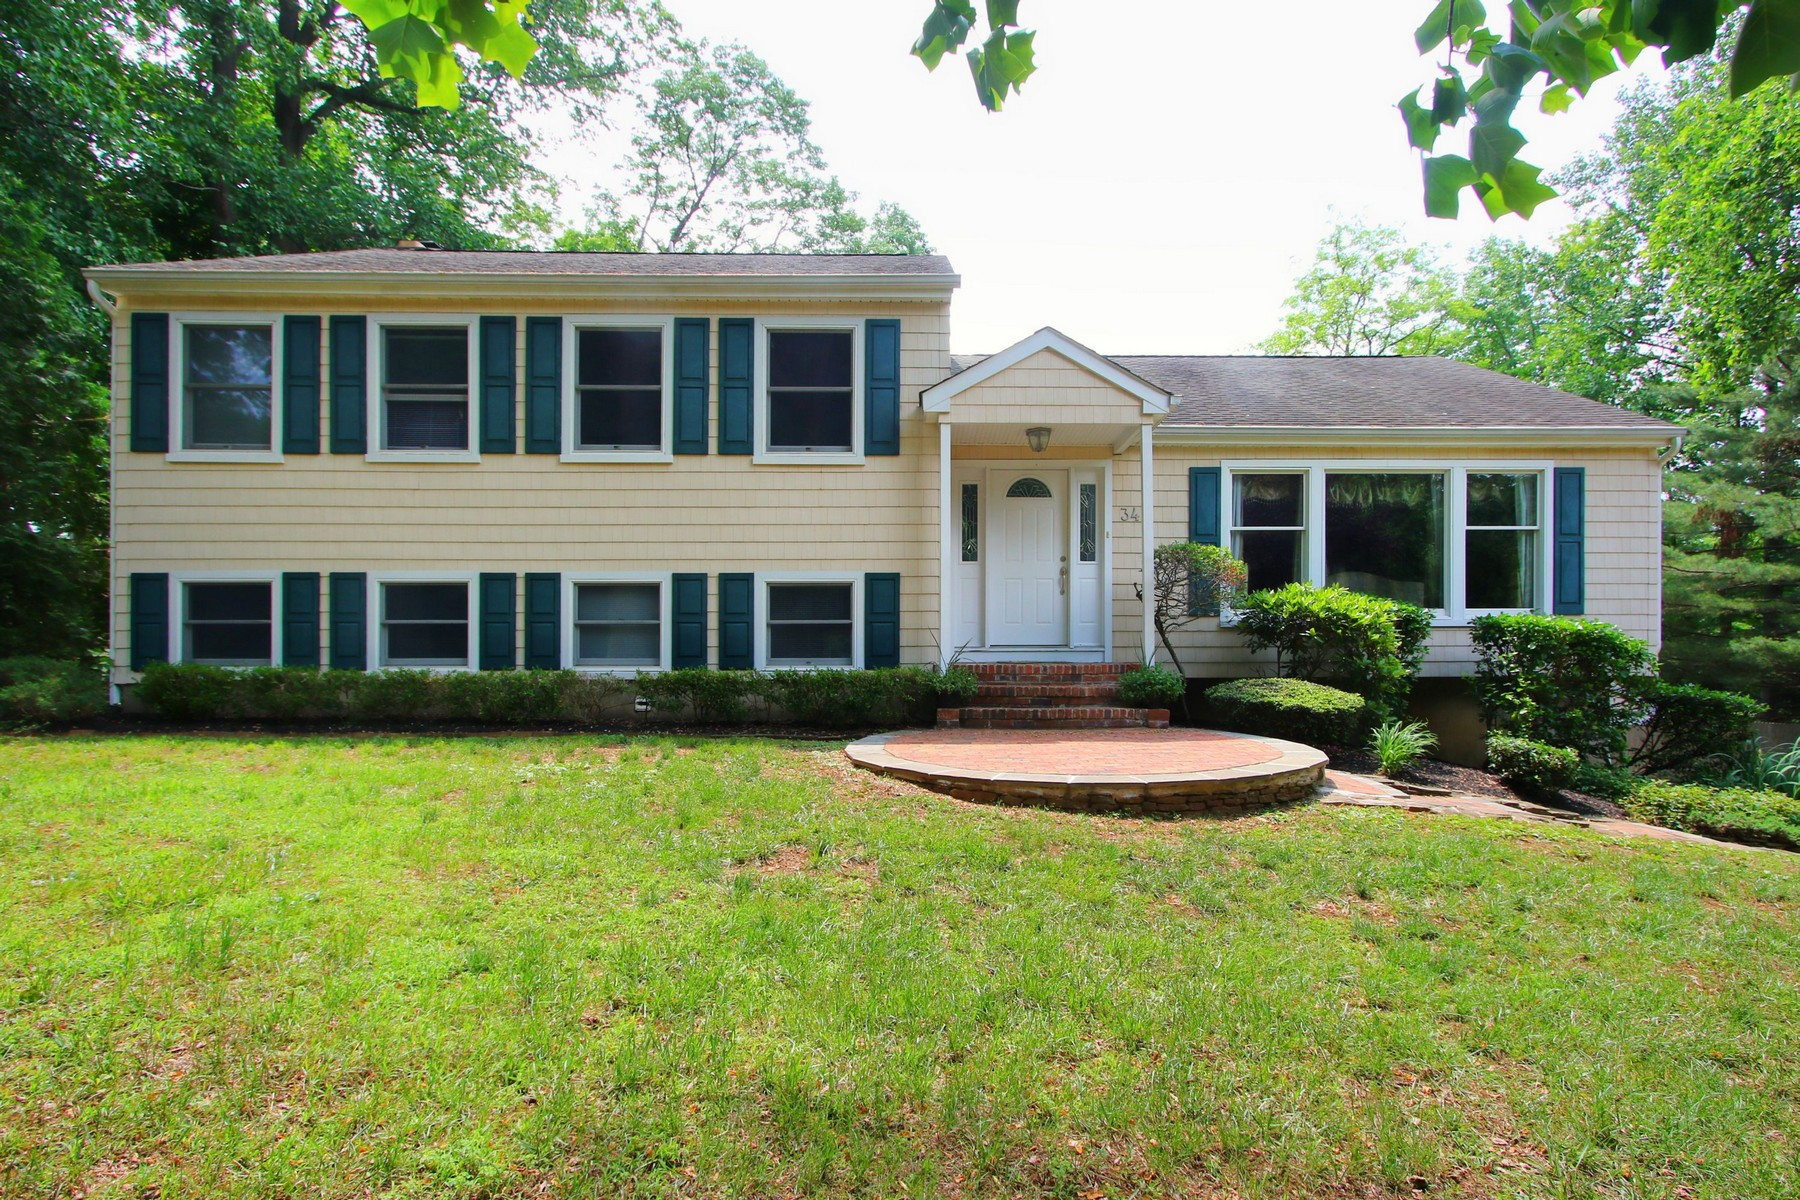 Single Family Home for Sale at Welcome Home! 34 Ramsey Ave. Middletown, New Jersey 07748 United States